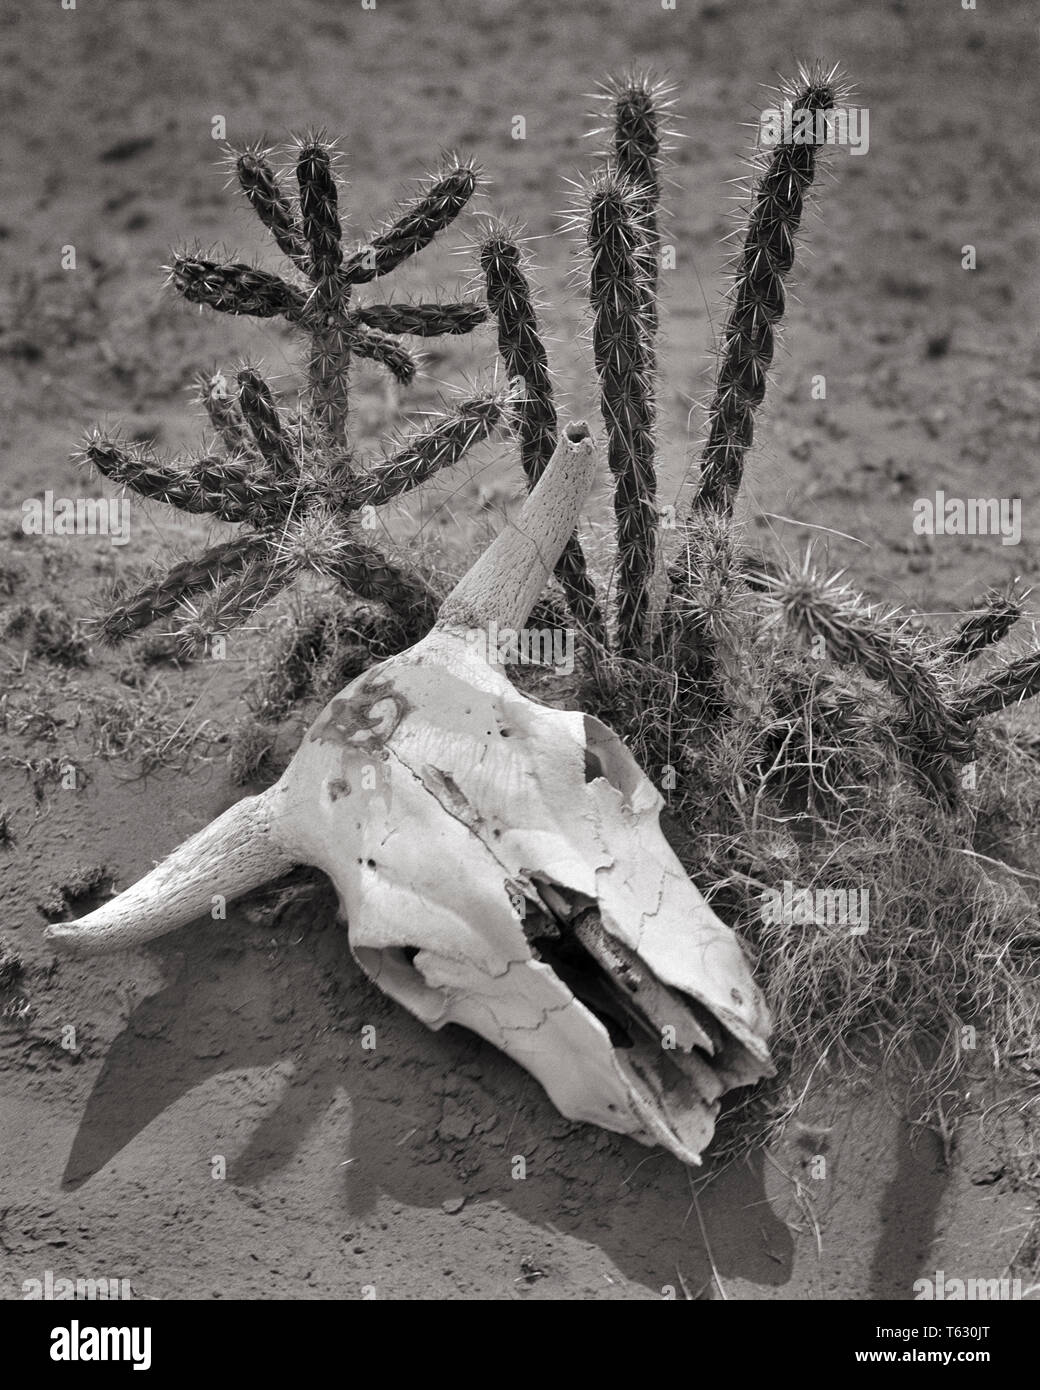 DRIED BLEACHED SKULL OF STEER LYING IN DIRT NEXT TO DESERT CACTUS - s4122 HAR001 HARS CONCEPTS DROUGHT BLACK AND WHITE HAR001 OLD FASHIONED REPRESENTATION SOUTHWESTERN - Stock Image